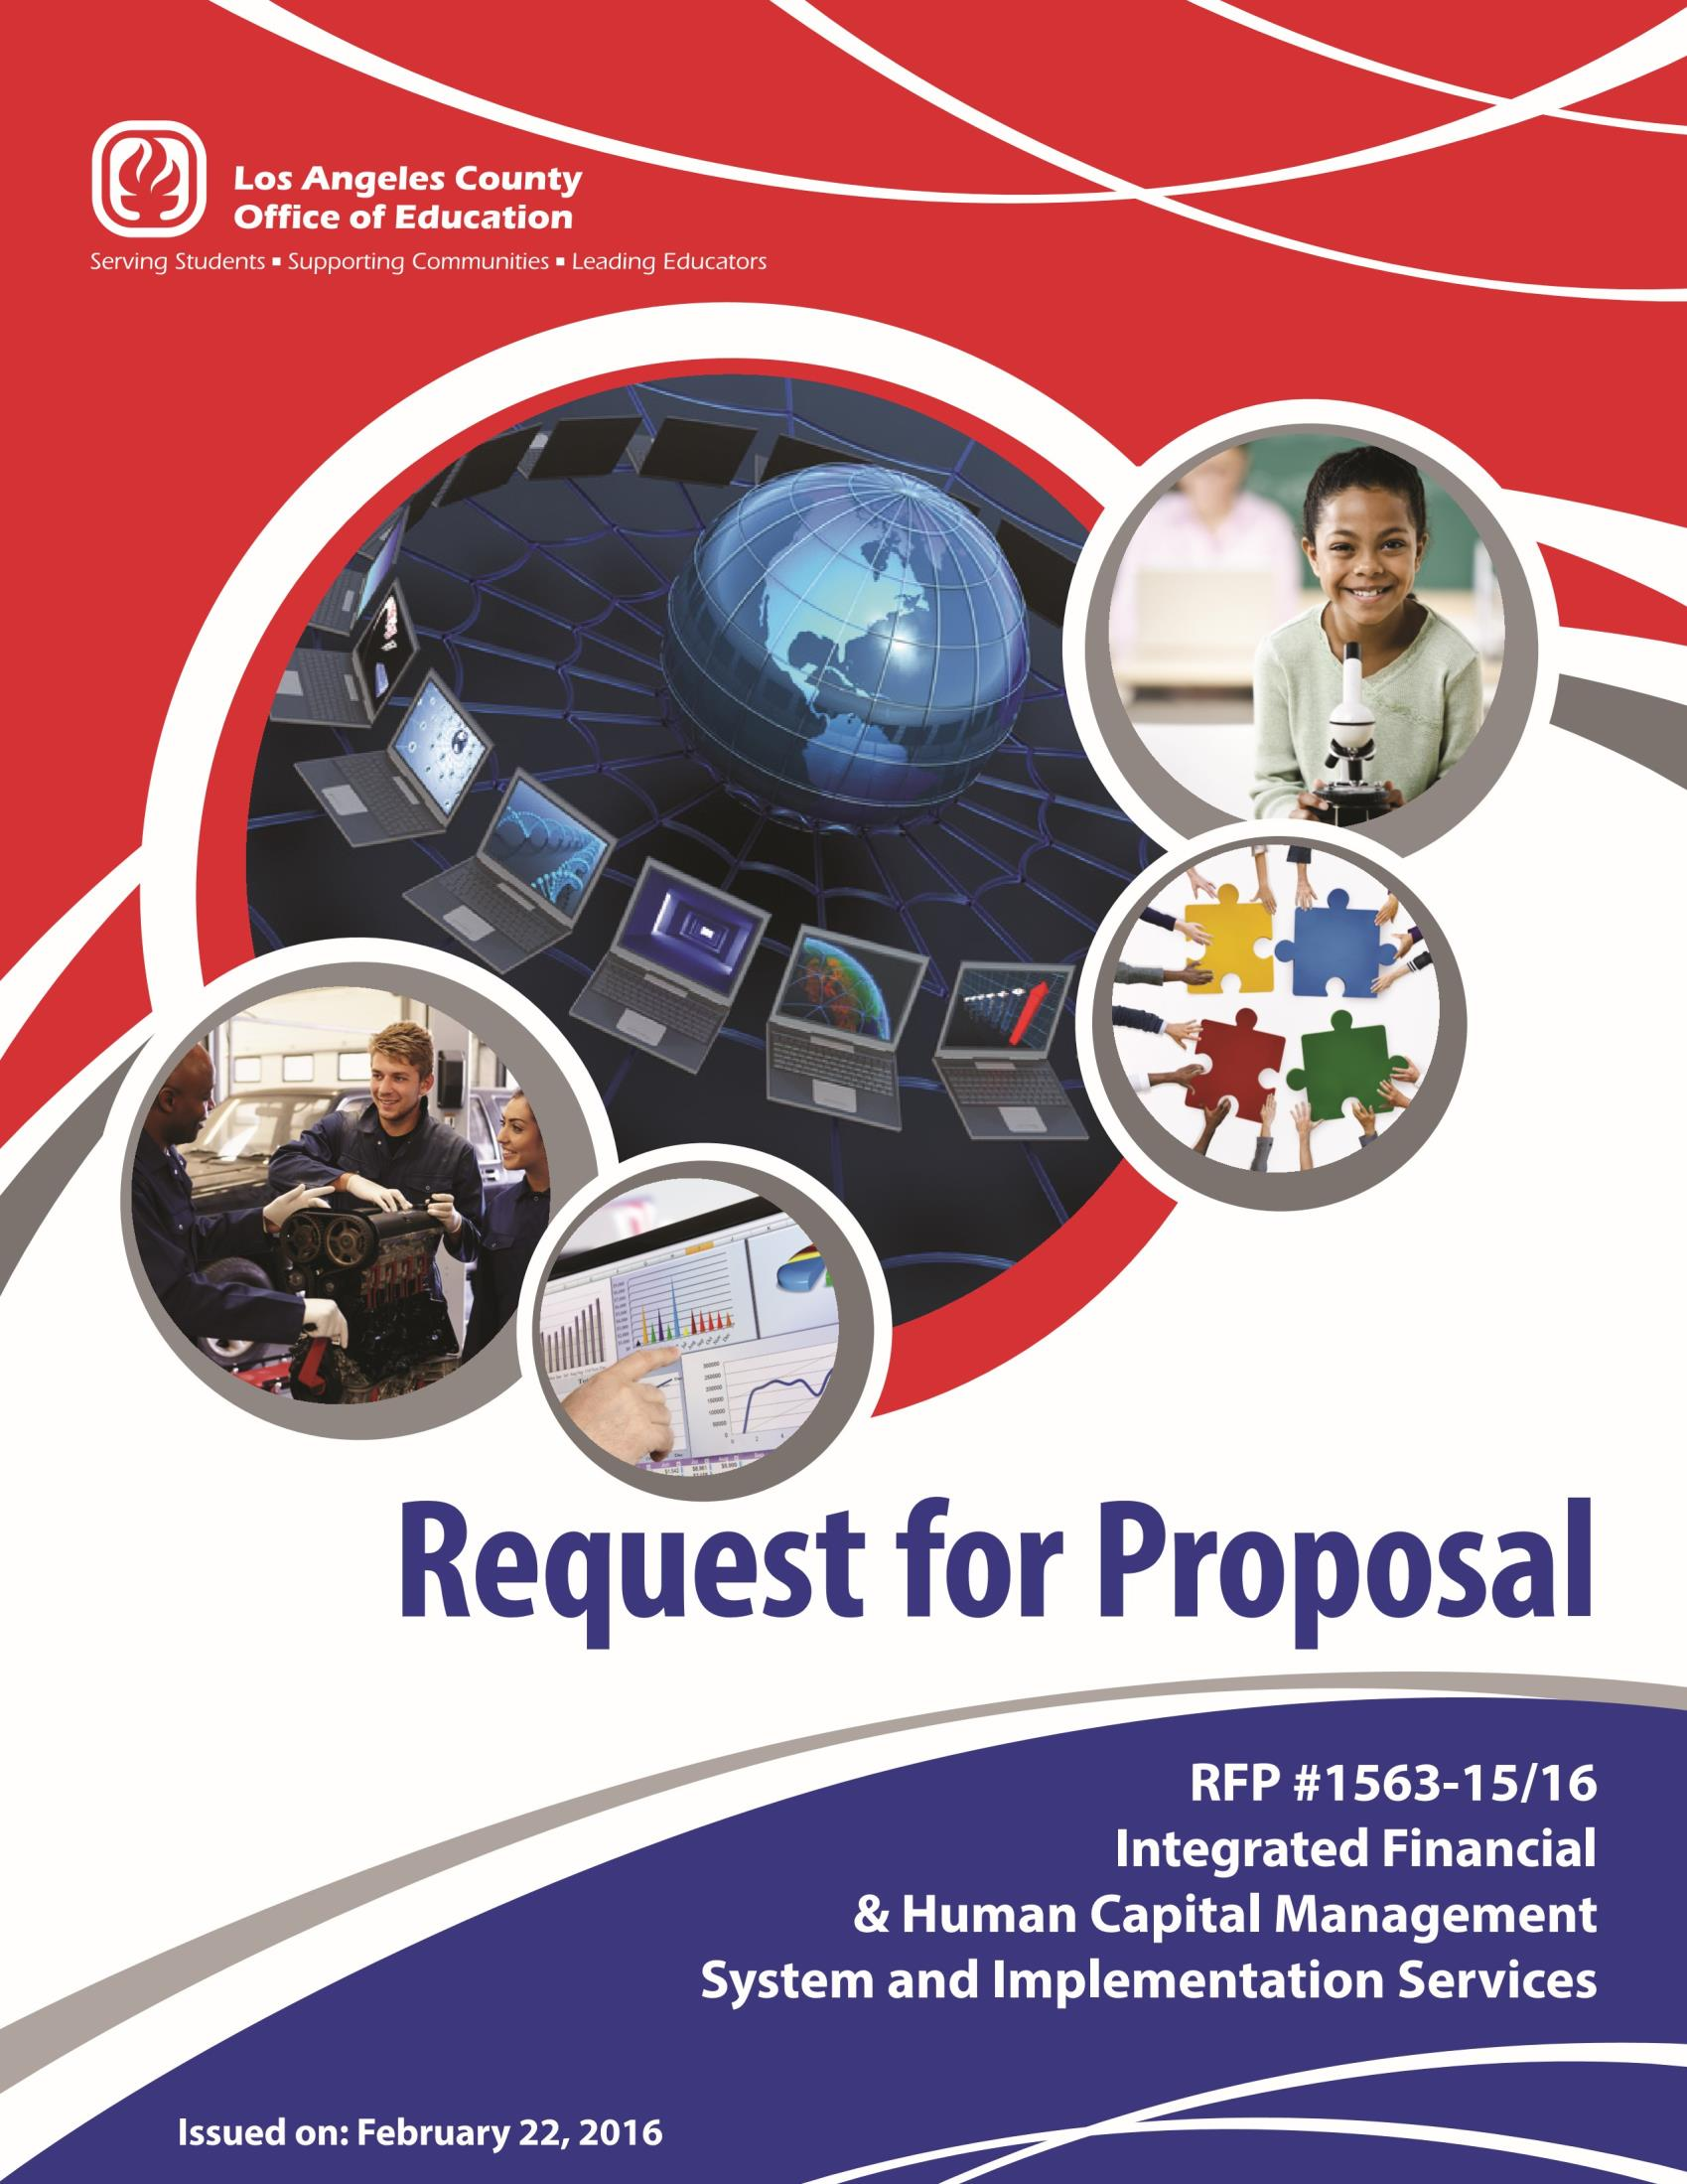 RFP #1563-15/16 Integrated Financial & Human Capital Management System and Implementation Services